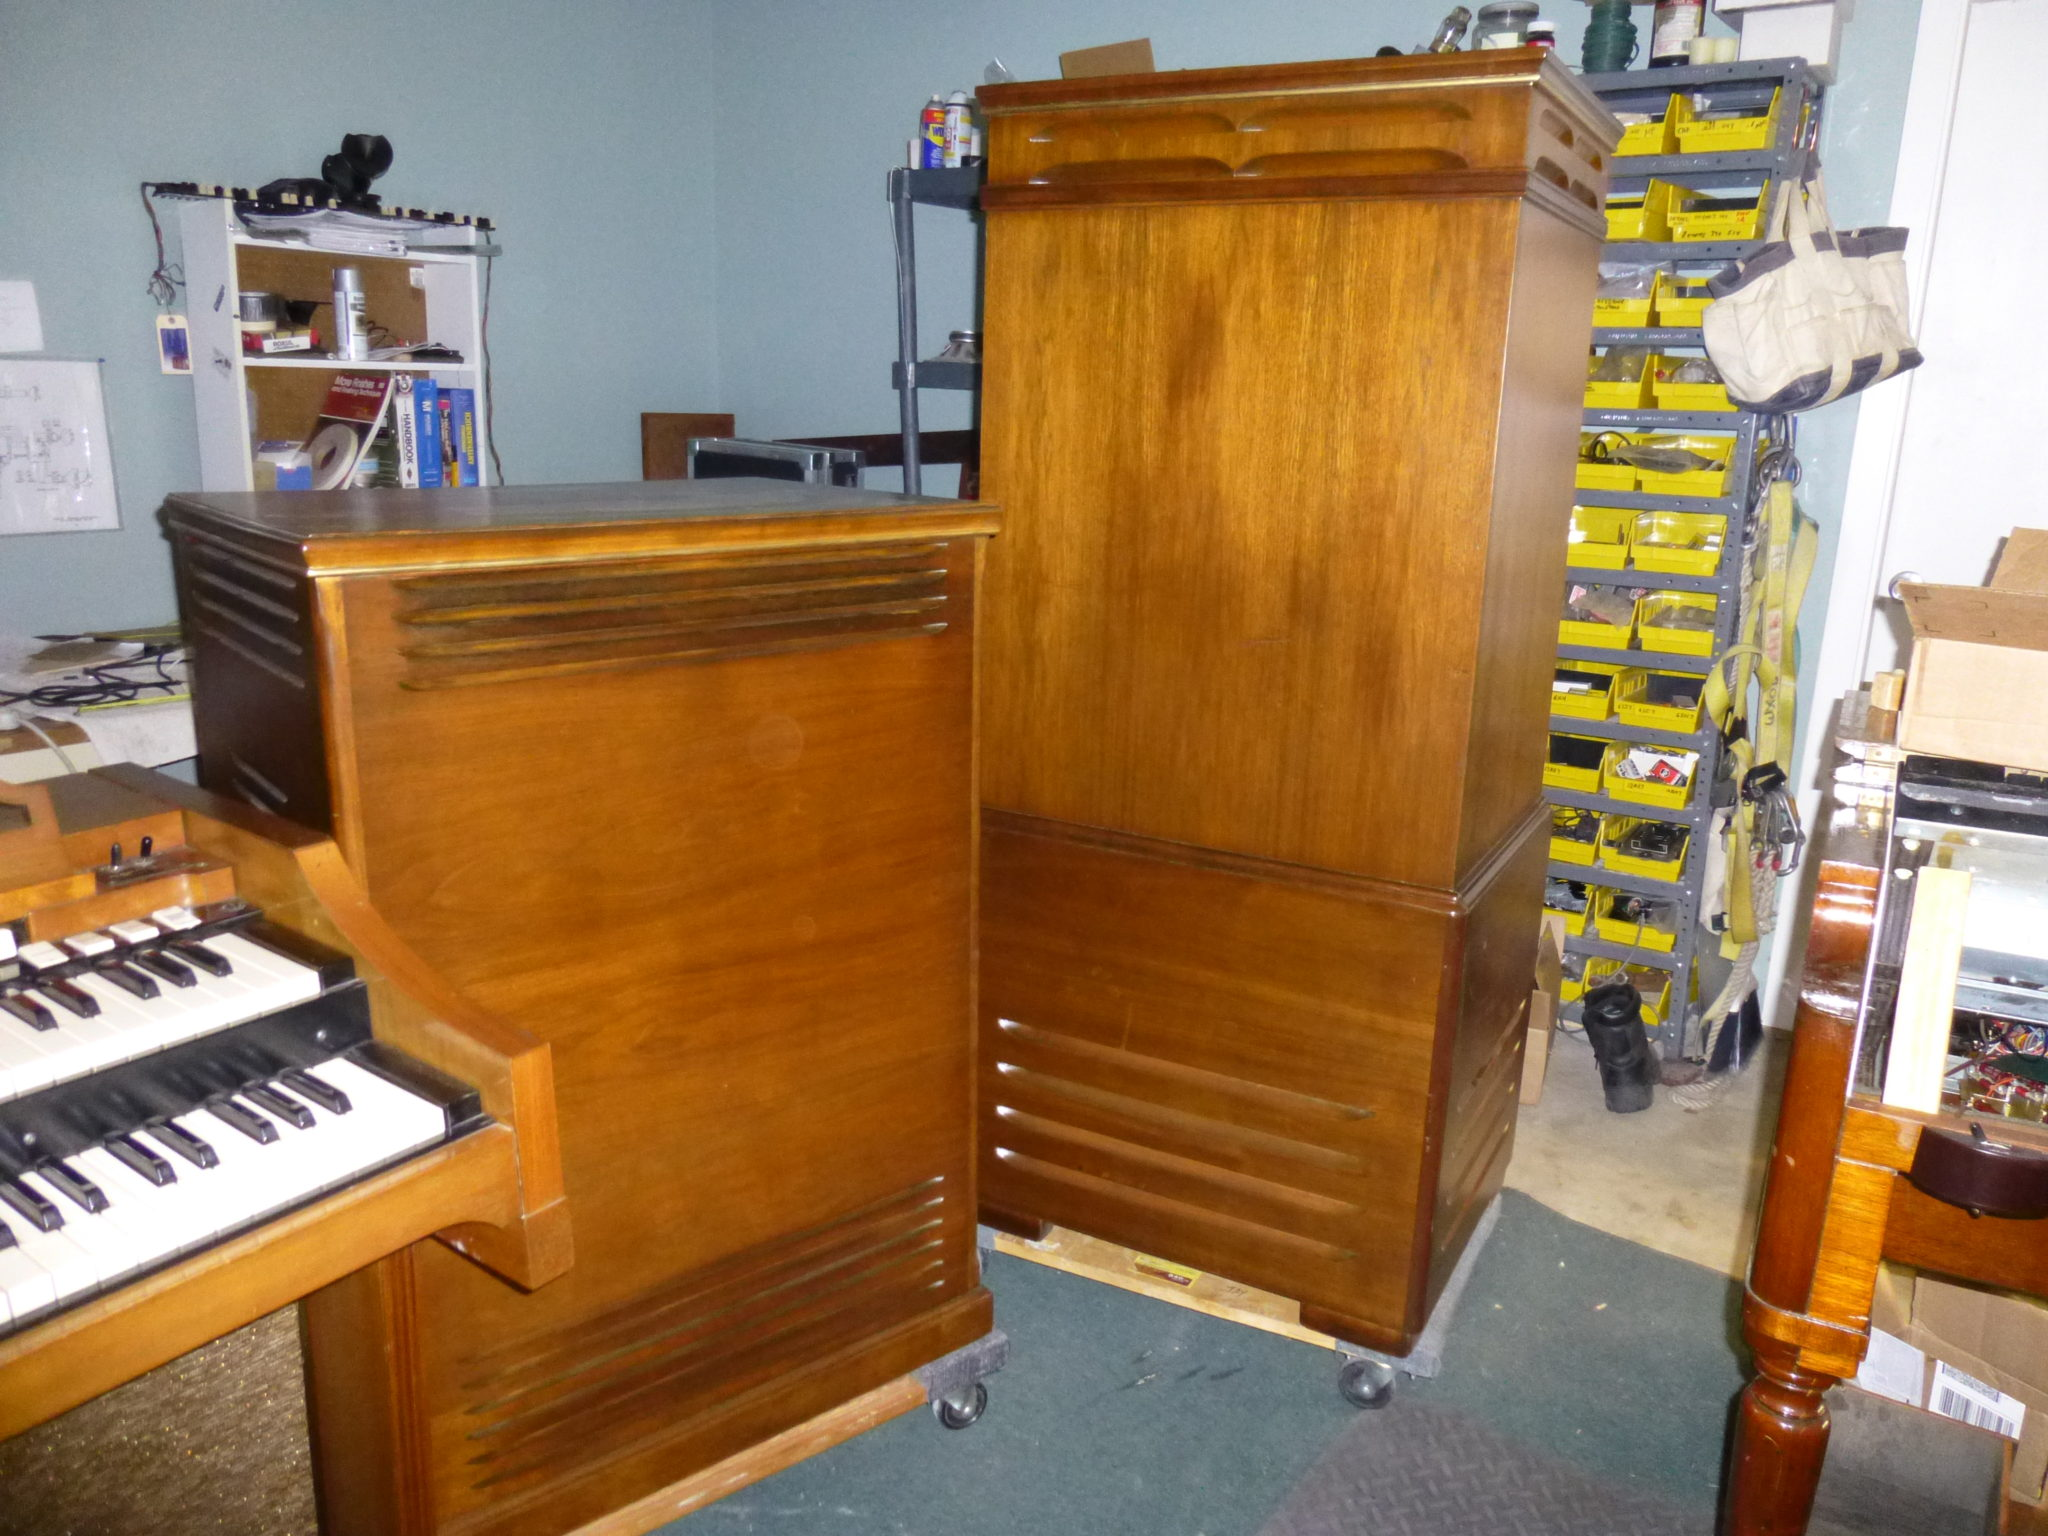 Jay's Organ Service, Restoration and Sales, Sunnyvale Texas